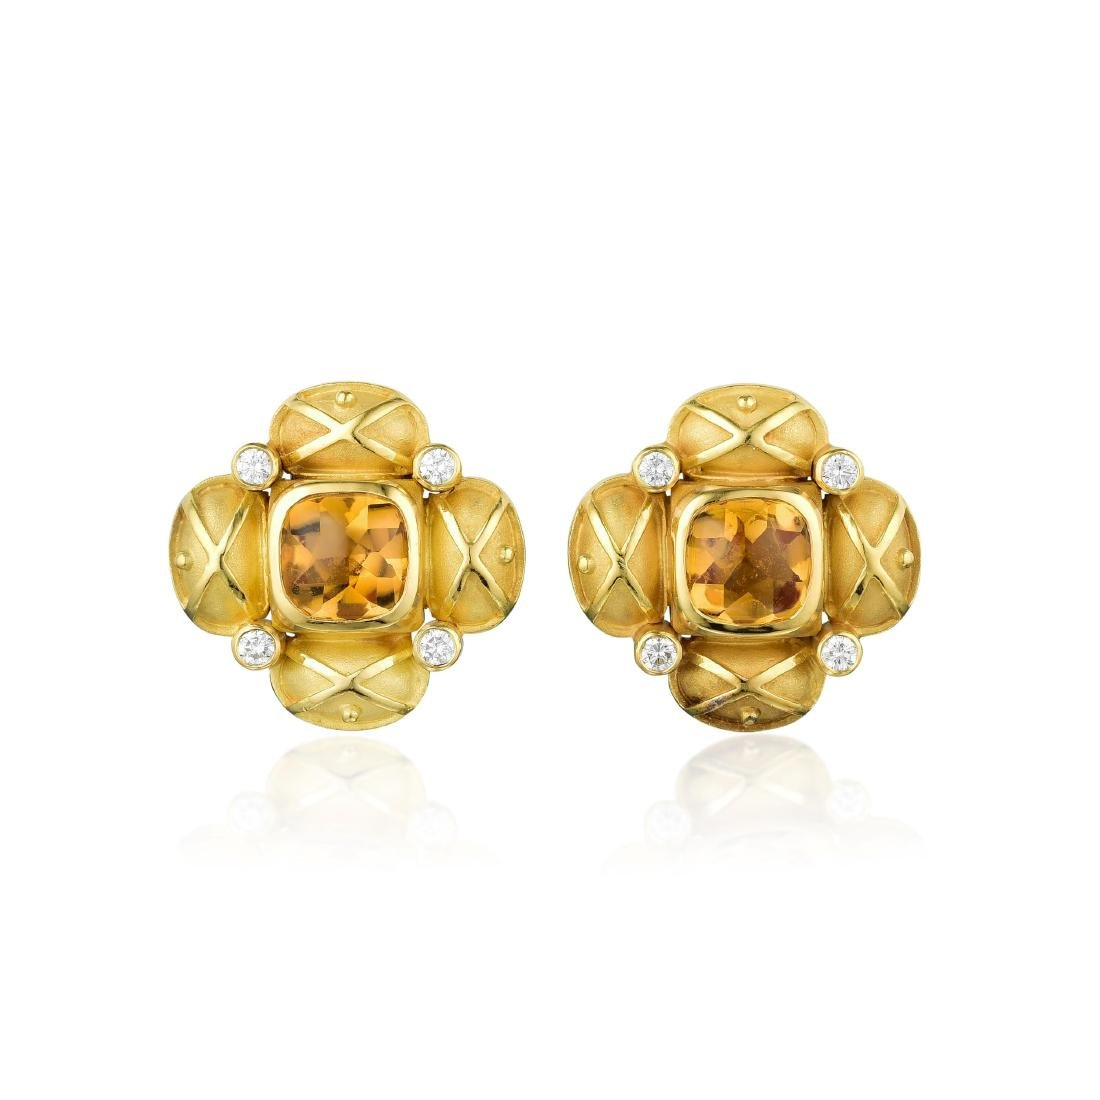 Charles Turi 18K Gold Citrine and Diamond Earrings